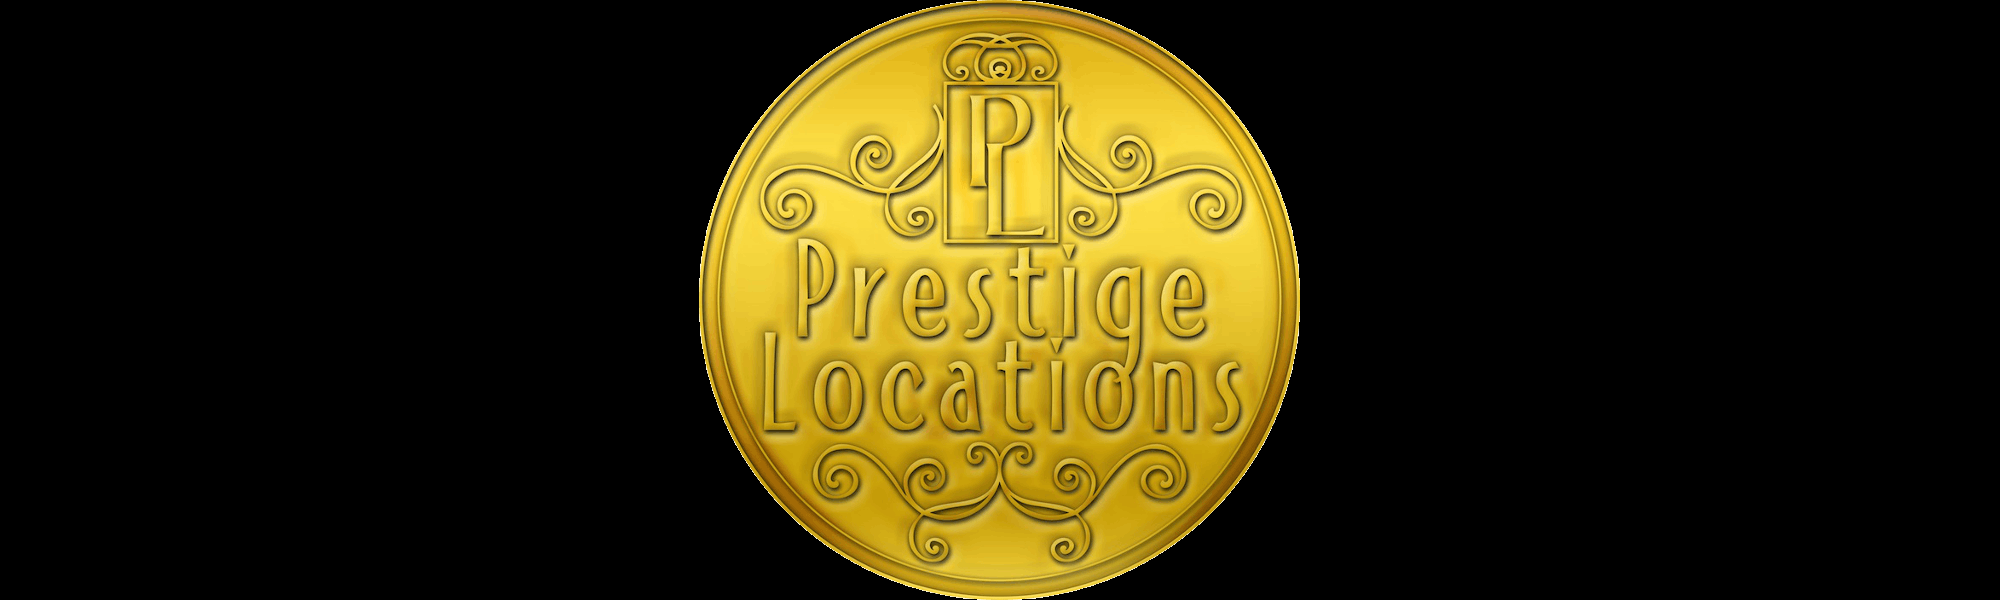 Logo Prestige Locations large